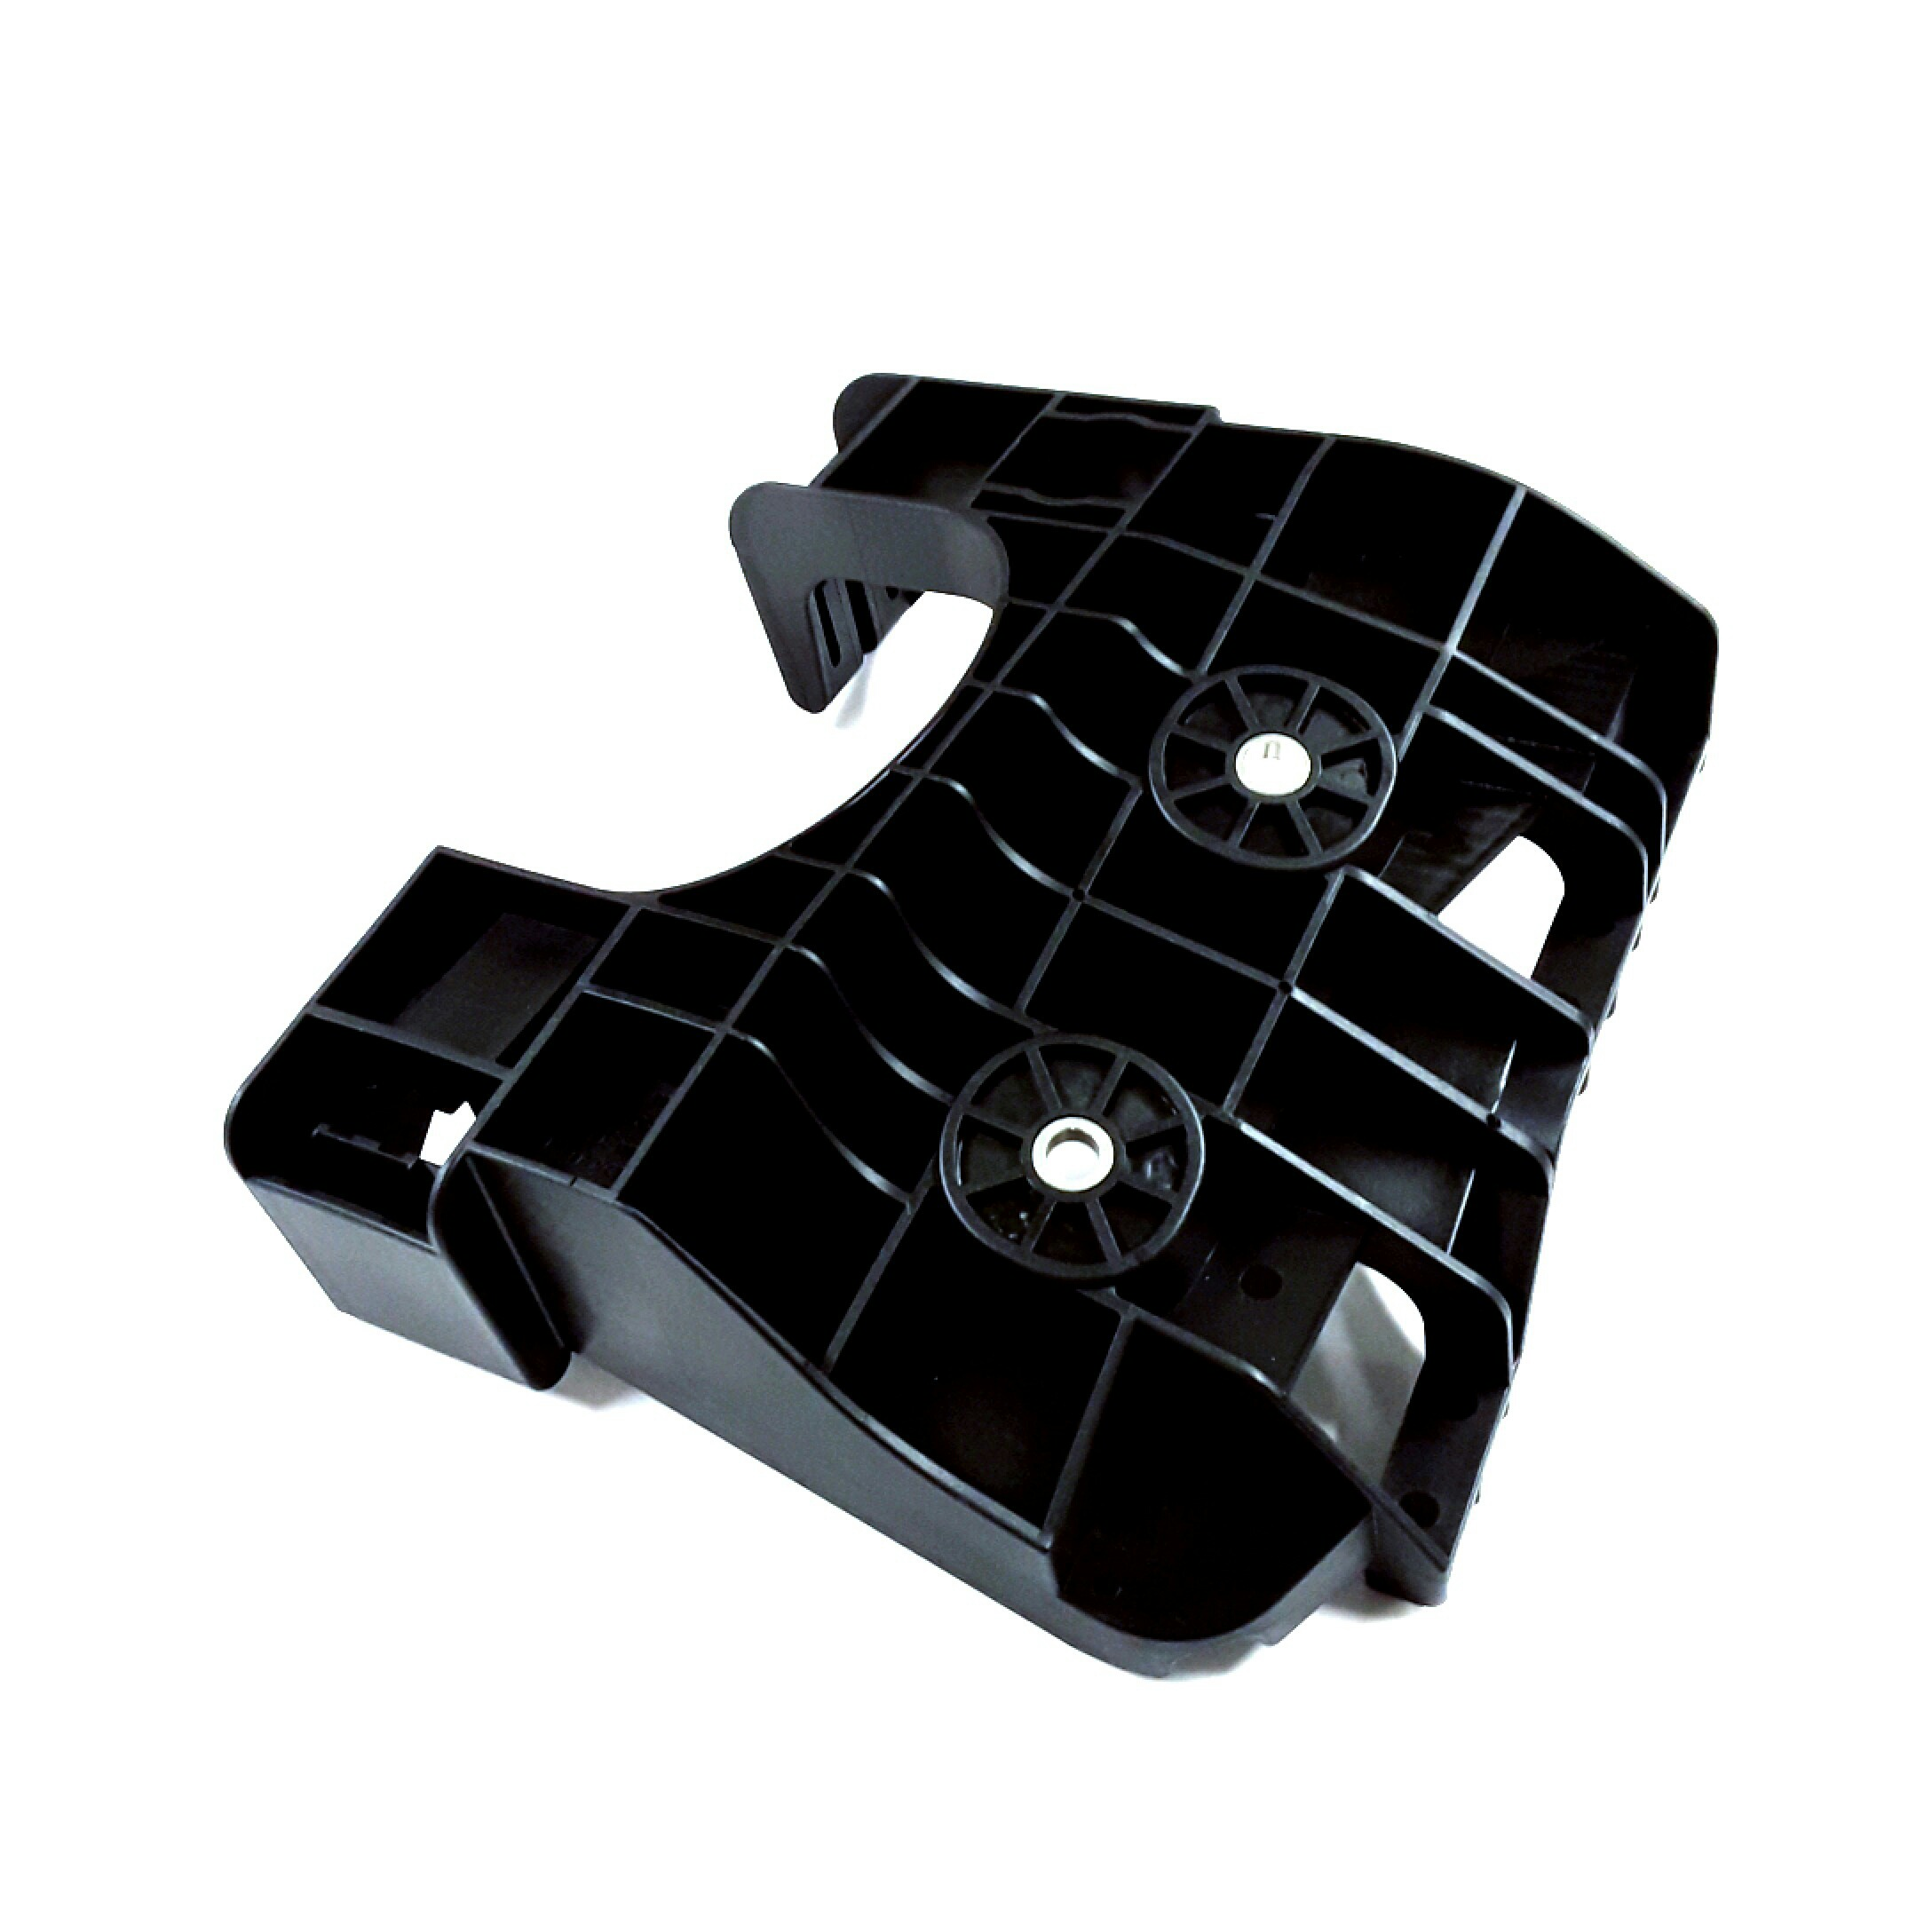 Audi Tt Housing For Centr Elec System Bracket As Required